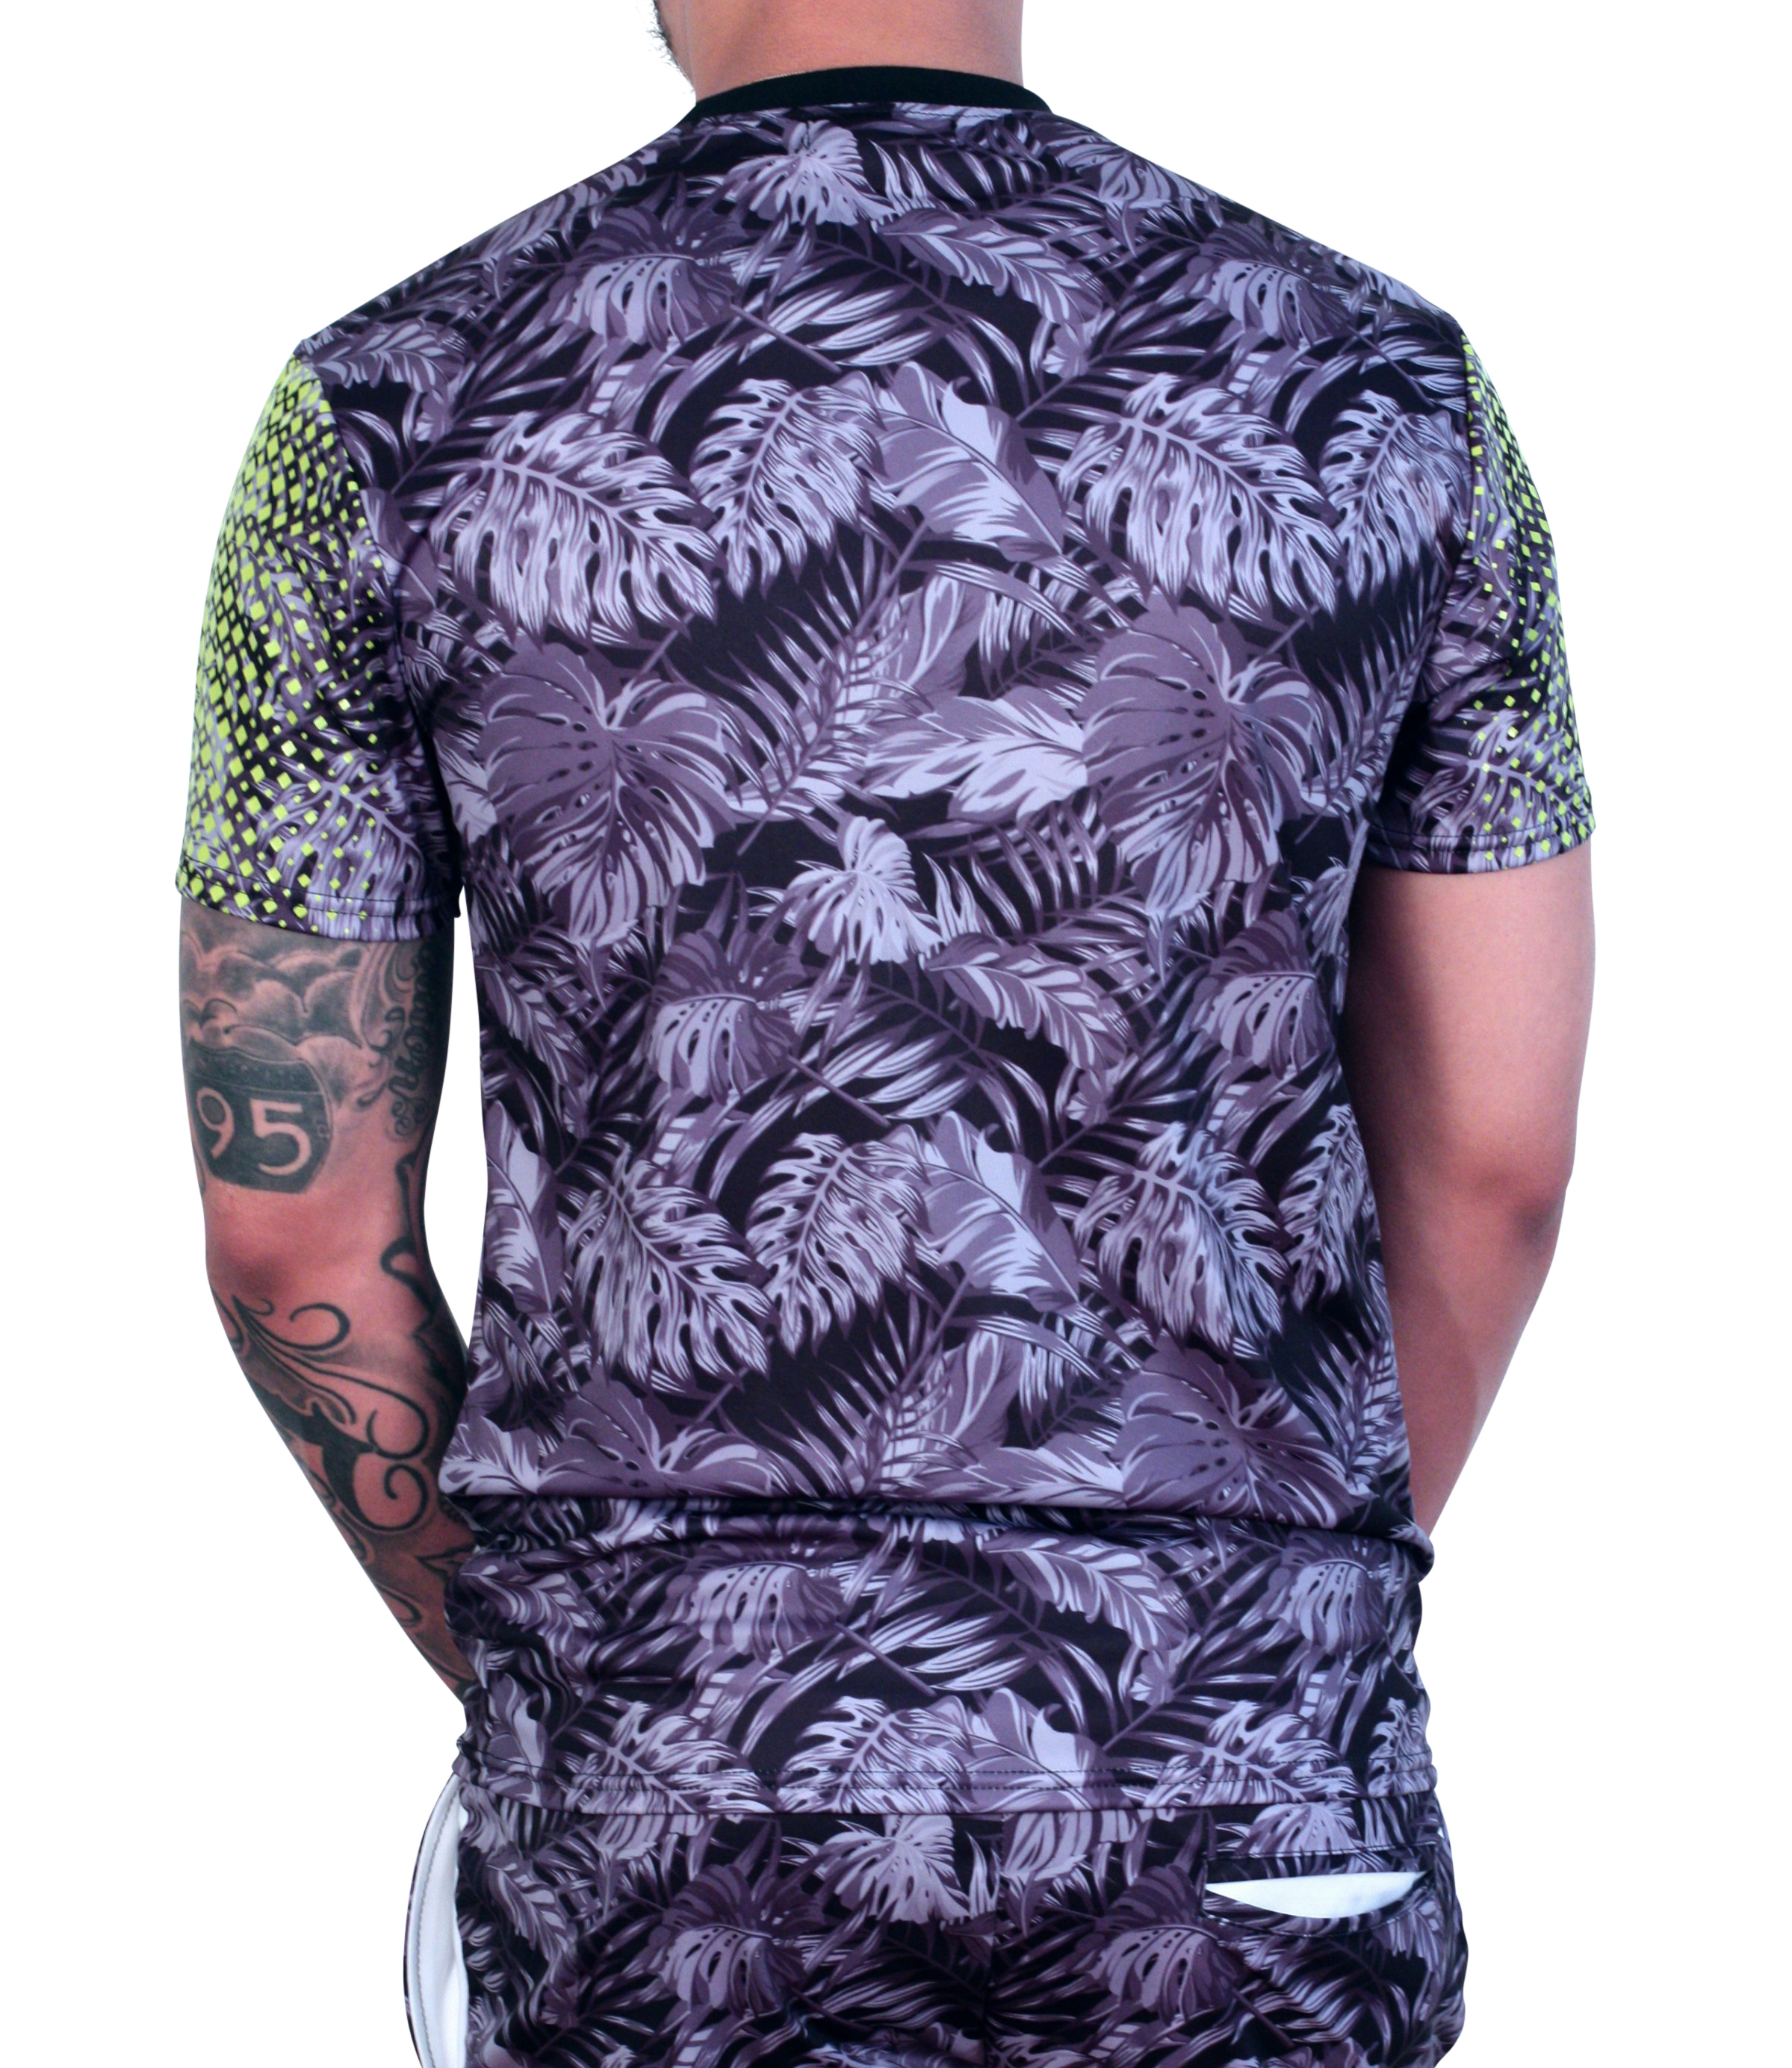 M. SOCIETY Hawaiian Printed Poly Tee Black